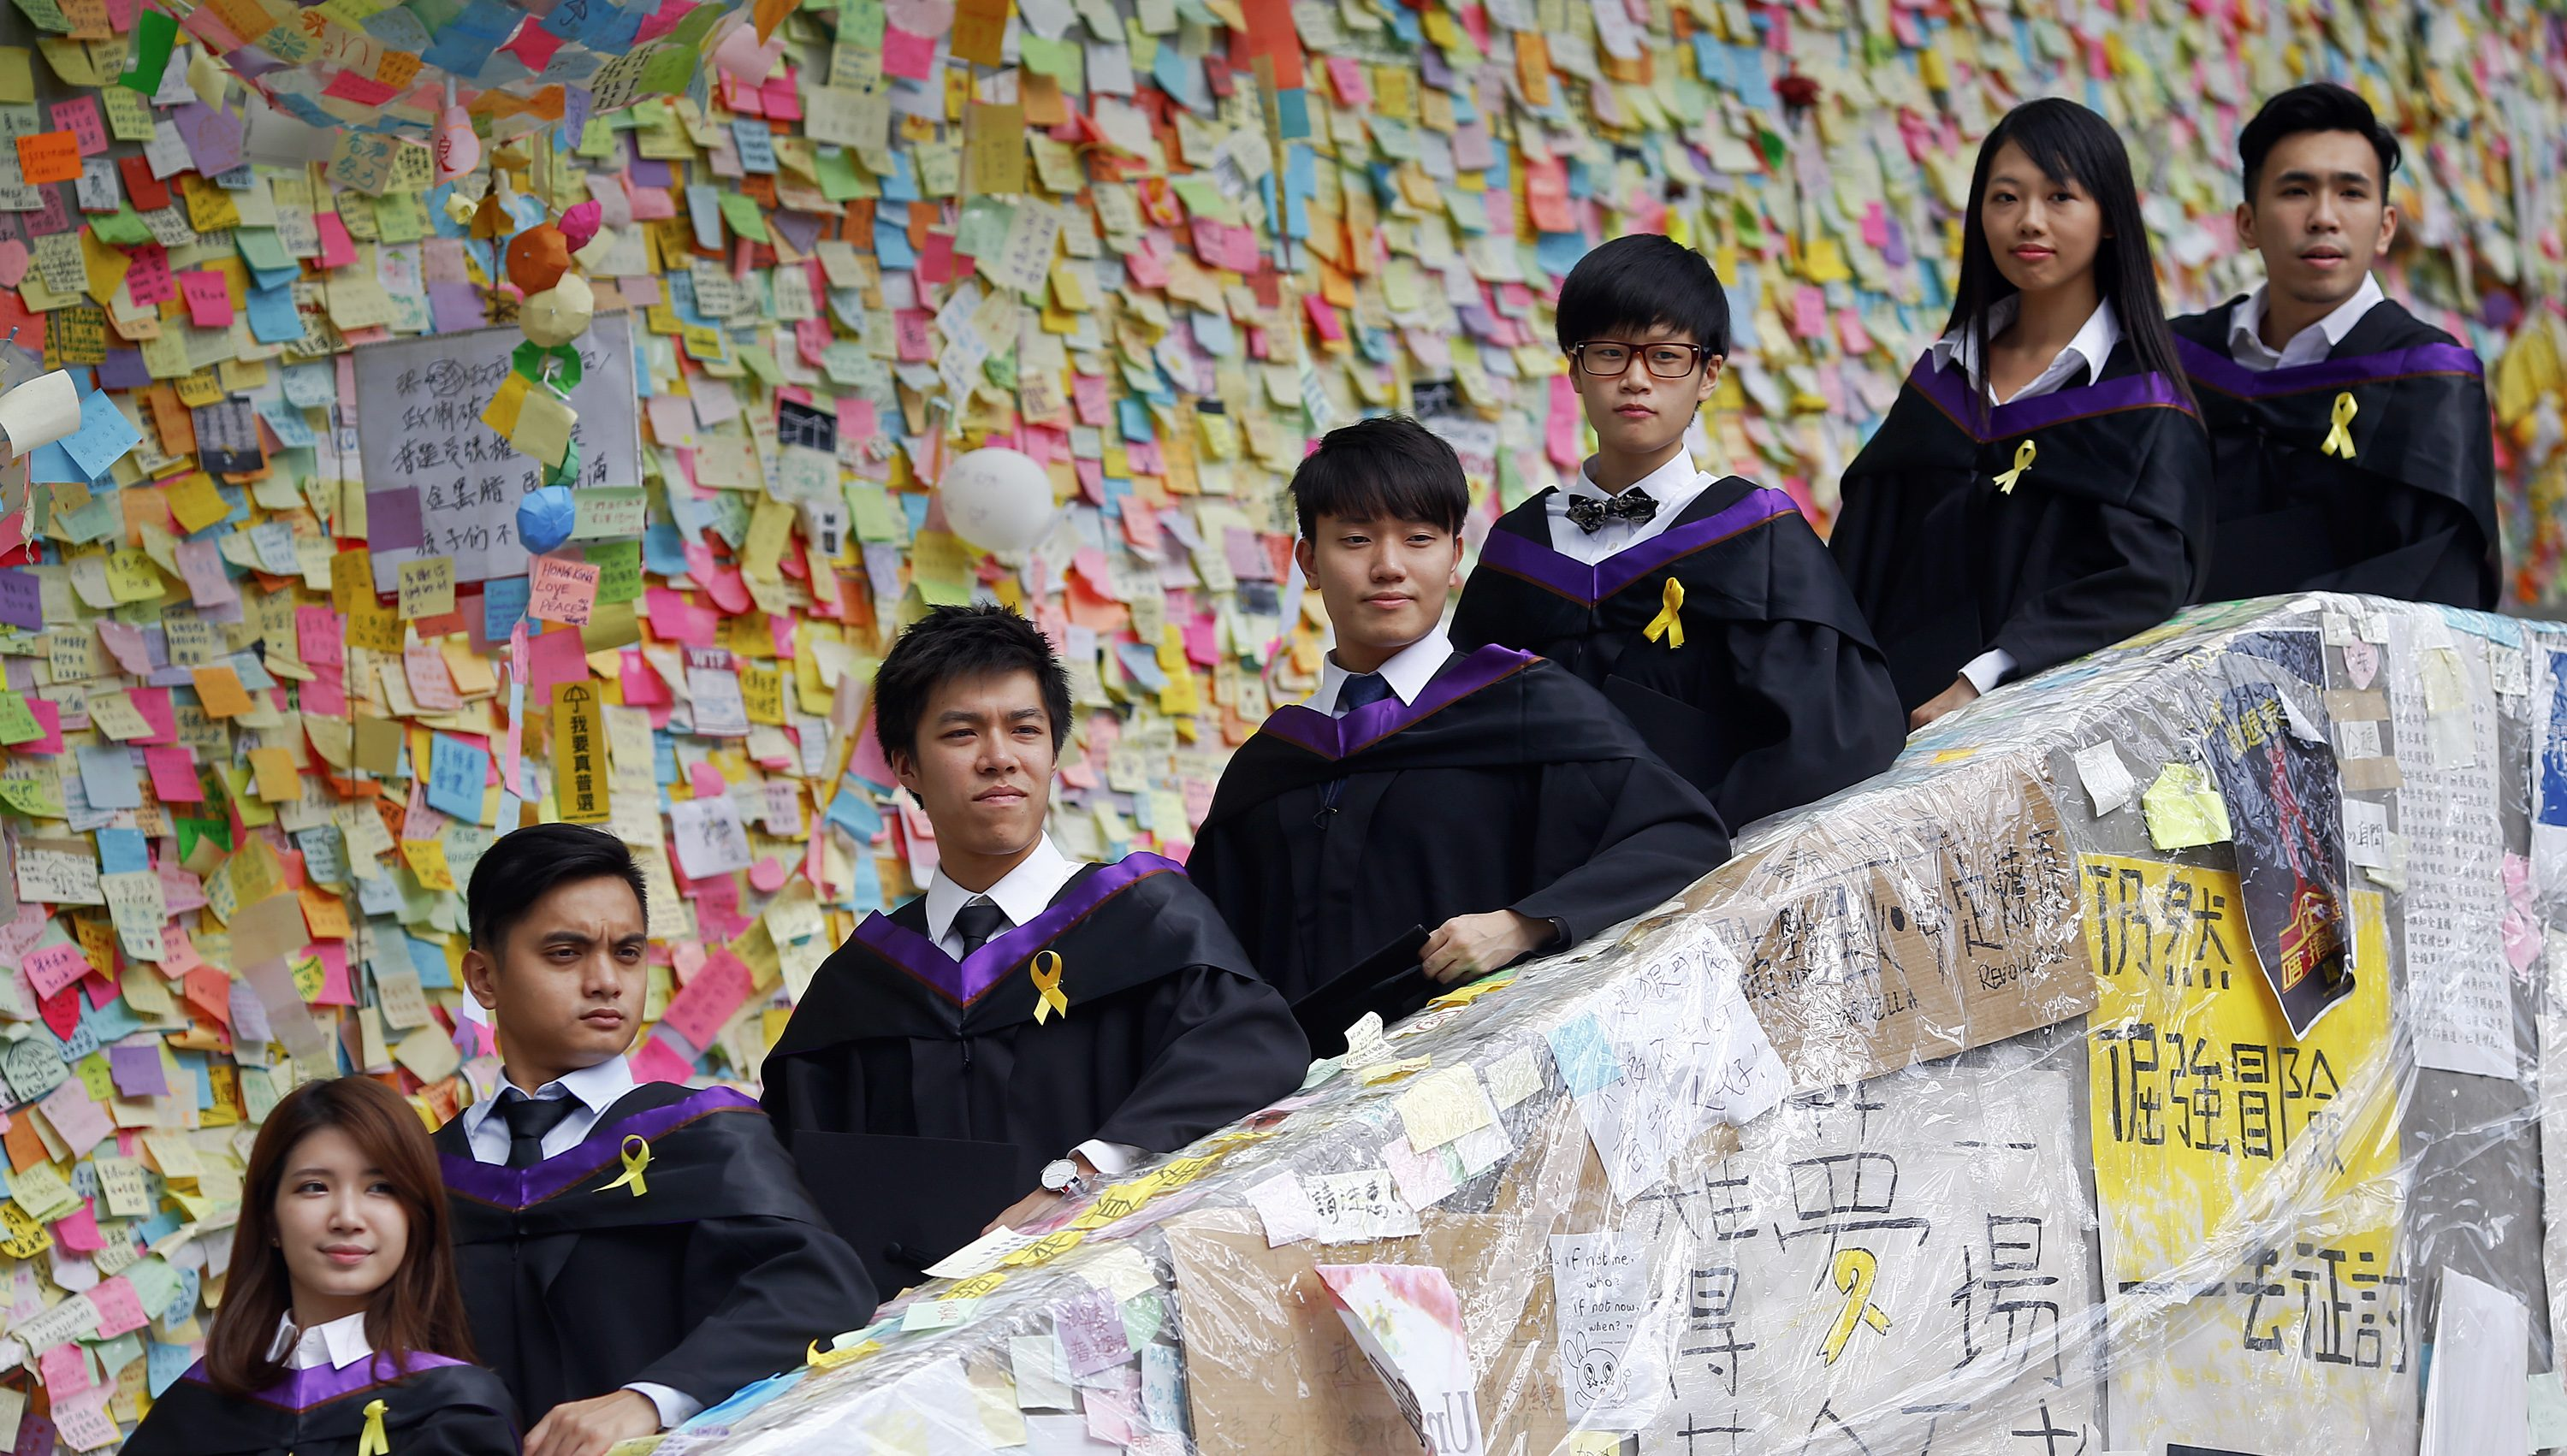 Graduated students of Hong Kong Polytechnic University have their pictures taken in front of a wall with messages of support for the pro-democracy movement in the part of Hong Kong's financial central district protesters are occupying